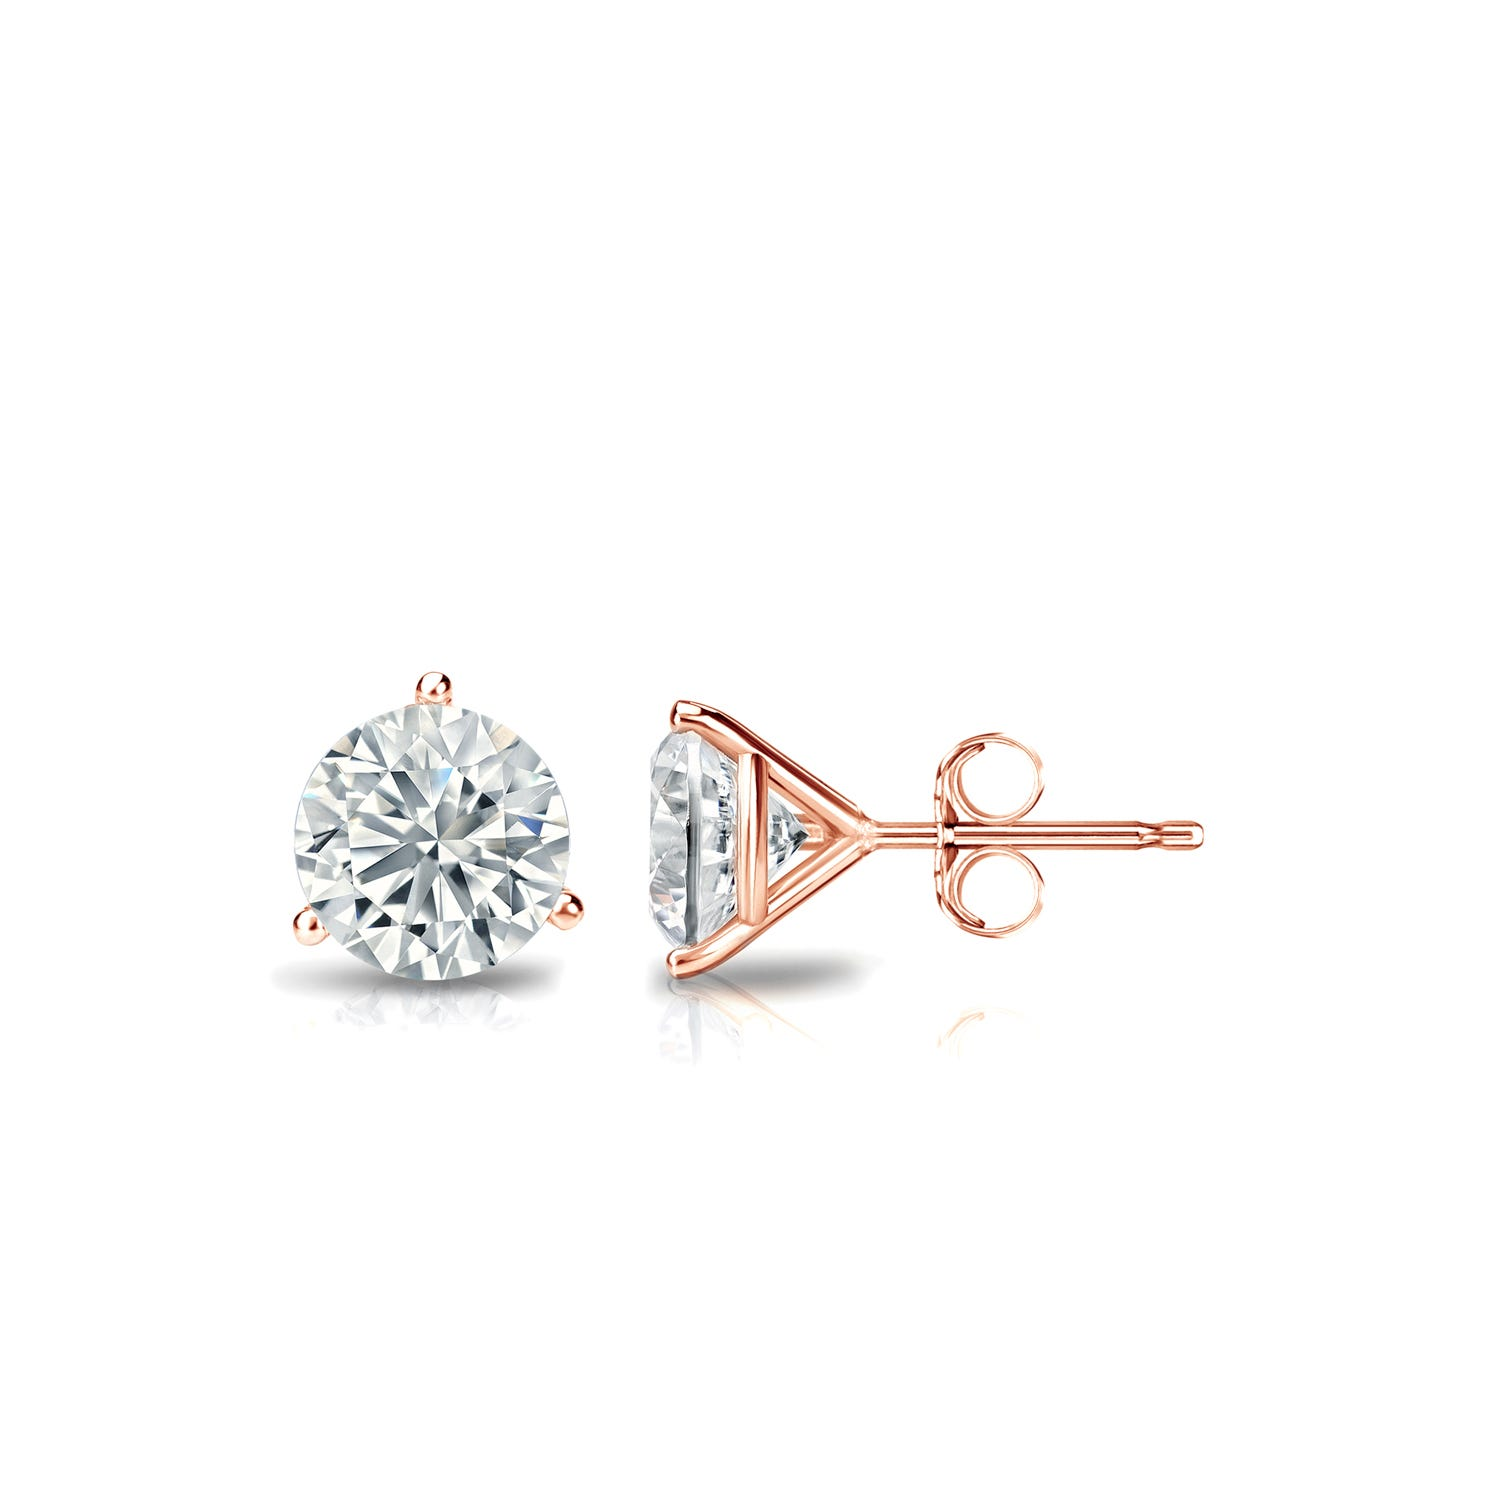 5/8 CTTW Round Diamond Solitaire Stud Earrings IJ VS2 in 14K Rose Gold 3-Prong Setting